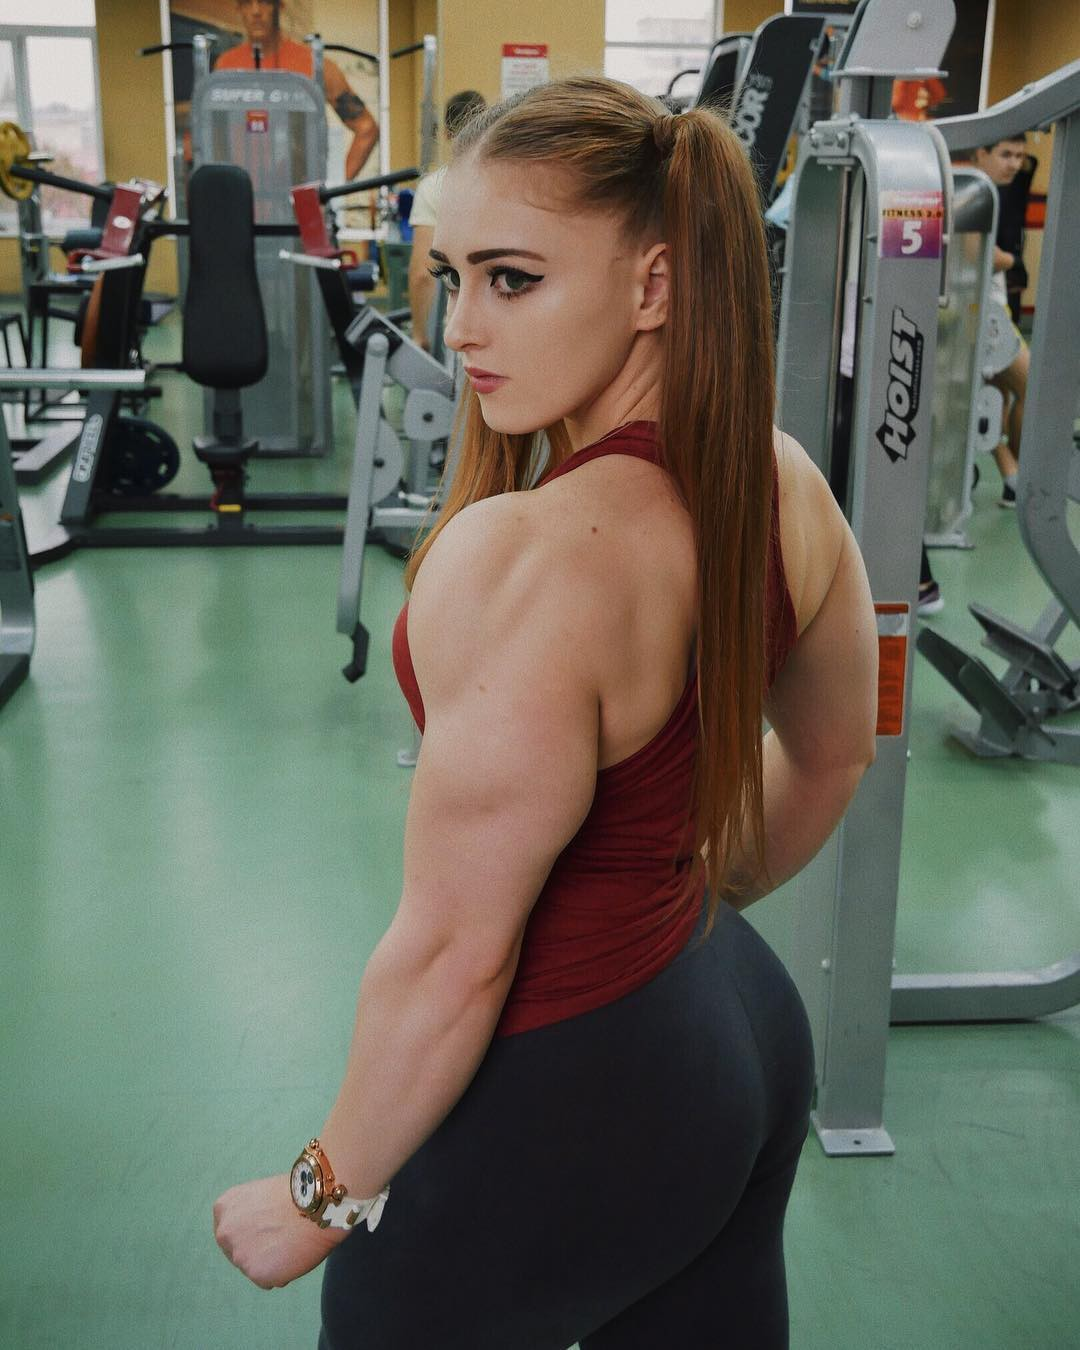 Holidays outfit ideas for julia vins instagram, Triceps brachii muscle